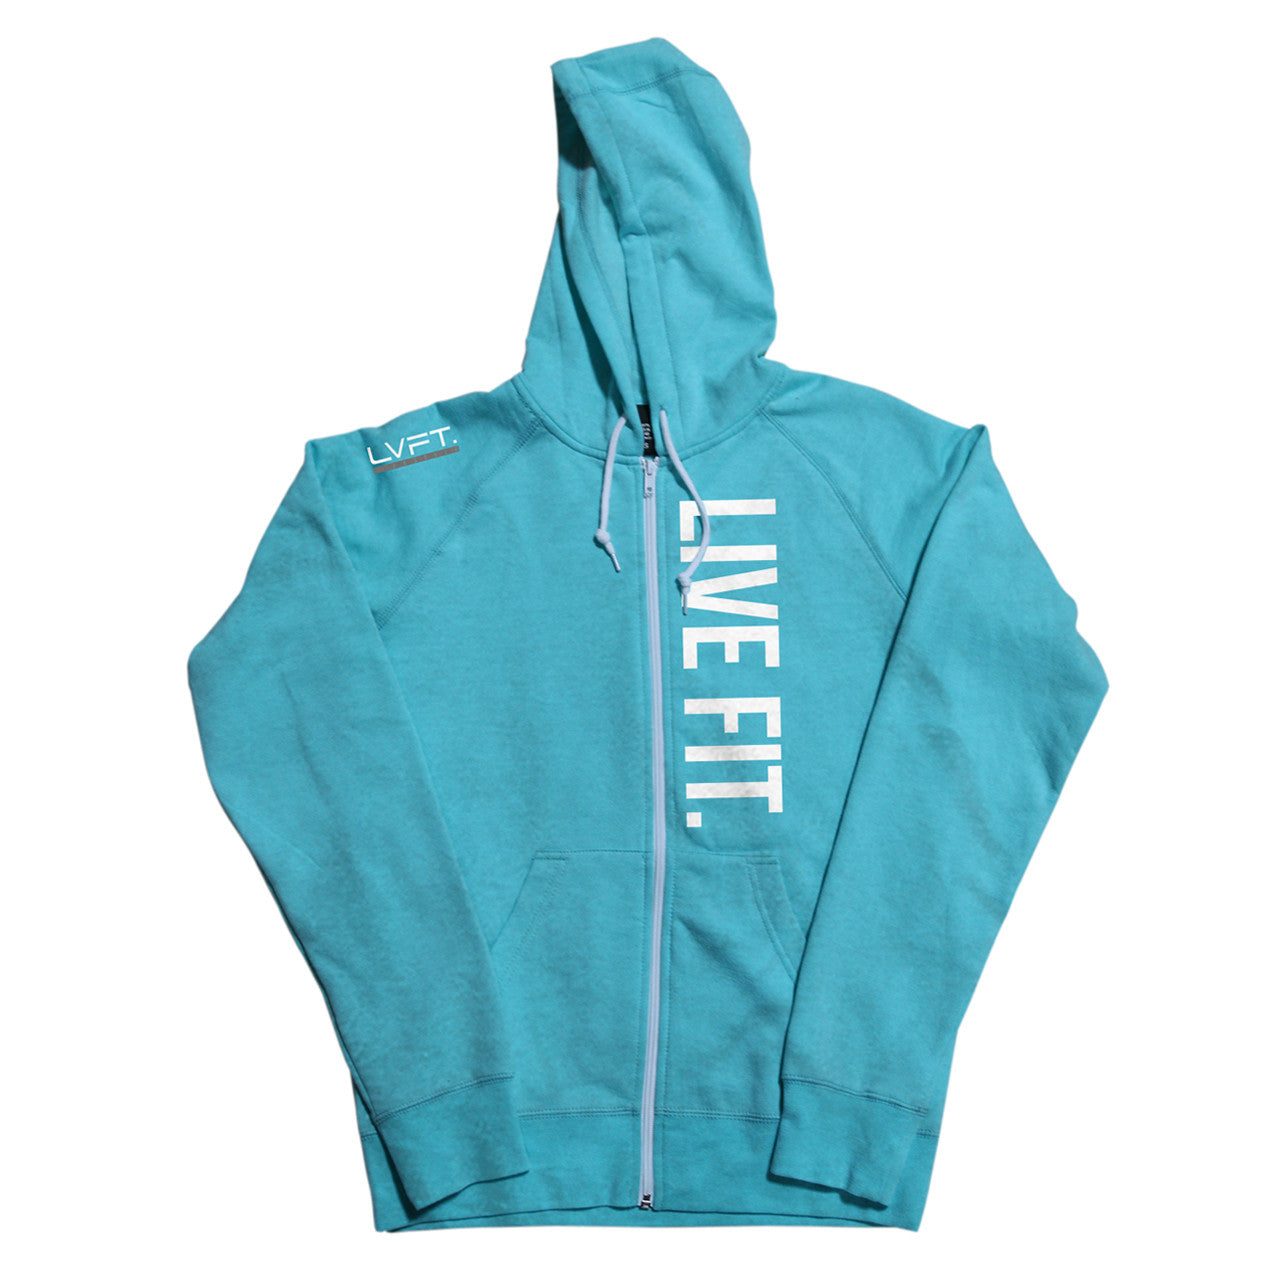 Live Fit Zip Up - Teal